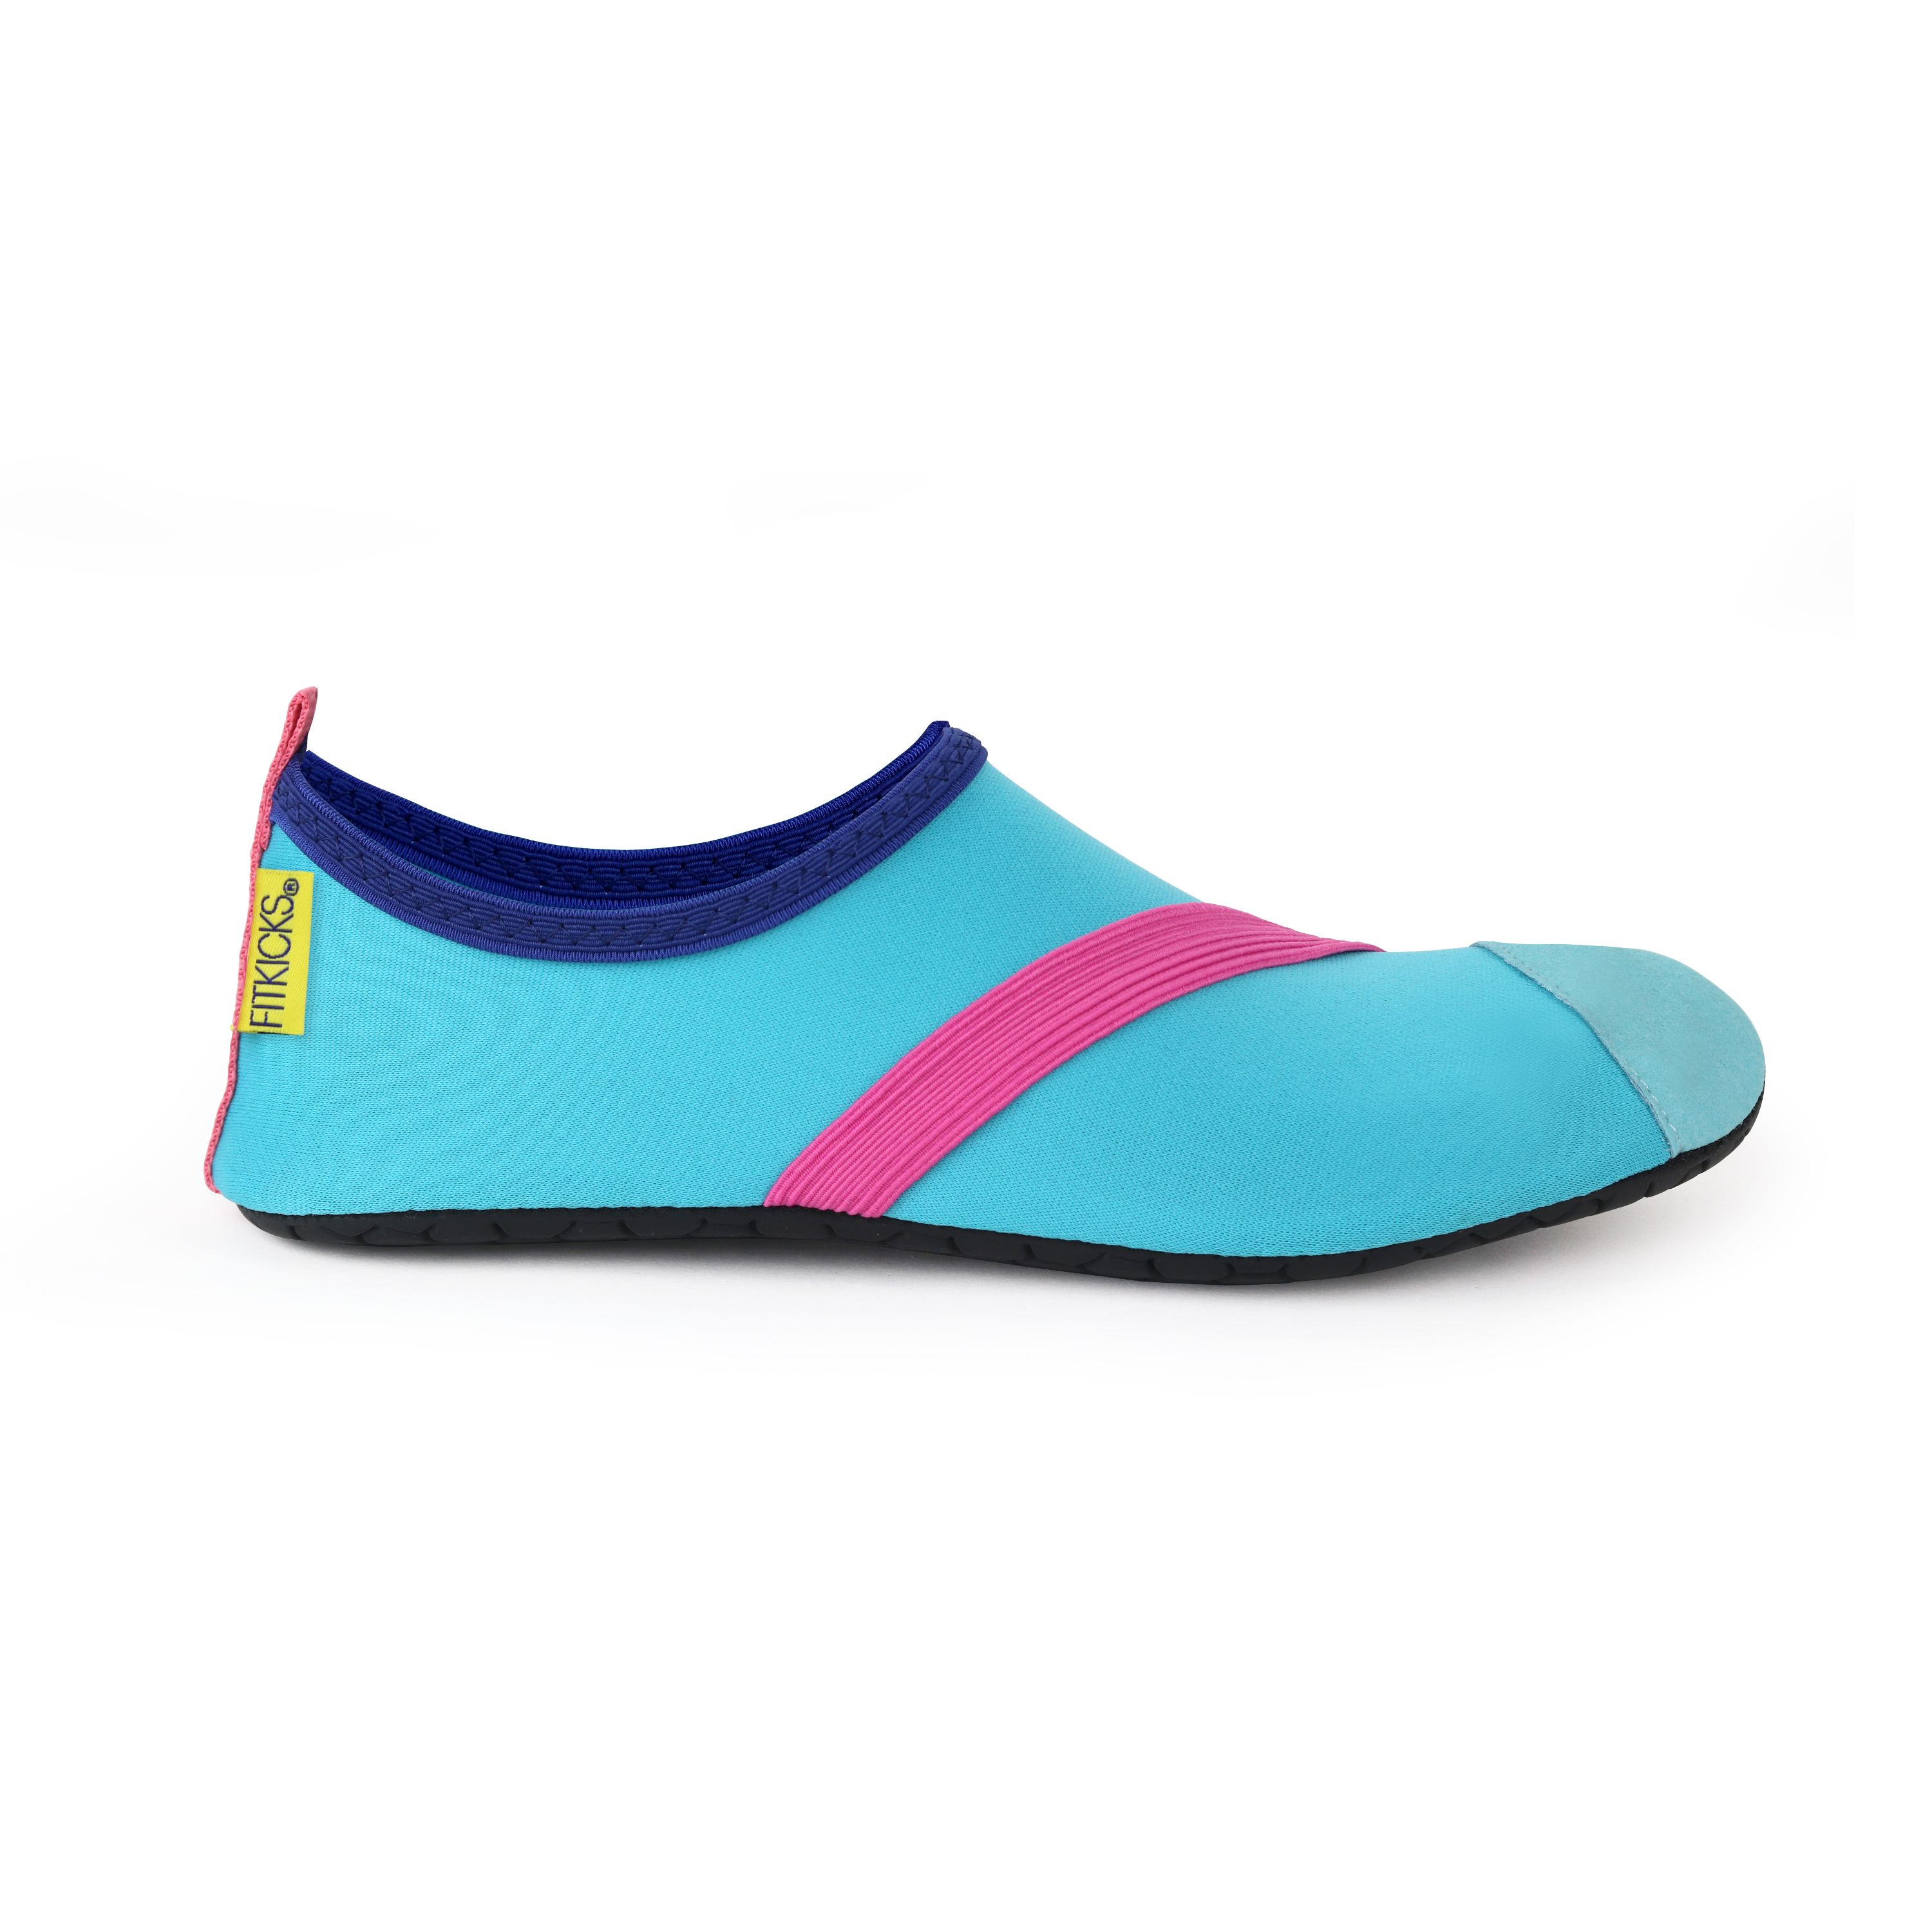 FitKicks Original Womens Foldable Active Lifestyle Minimalist Footwear Barefoot Yoga Sporty Water Shoes